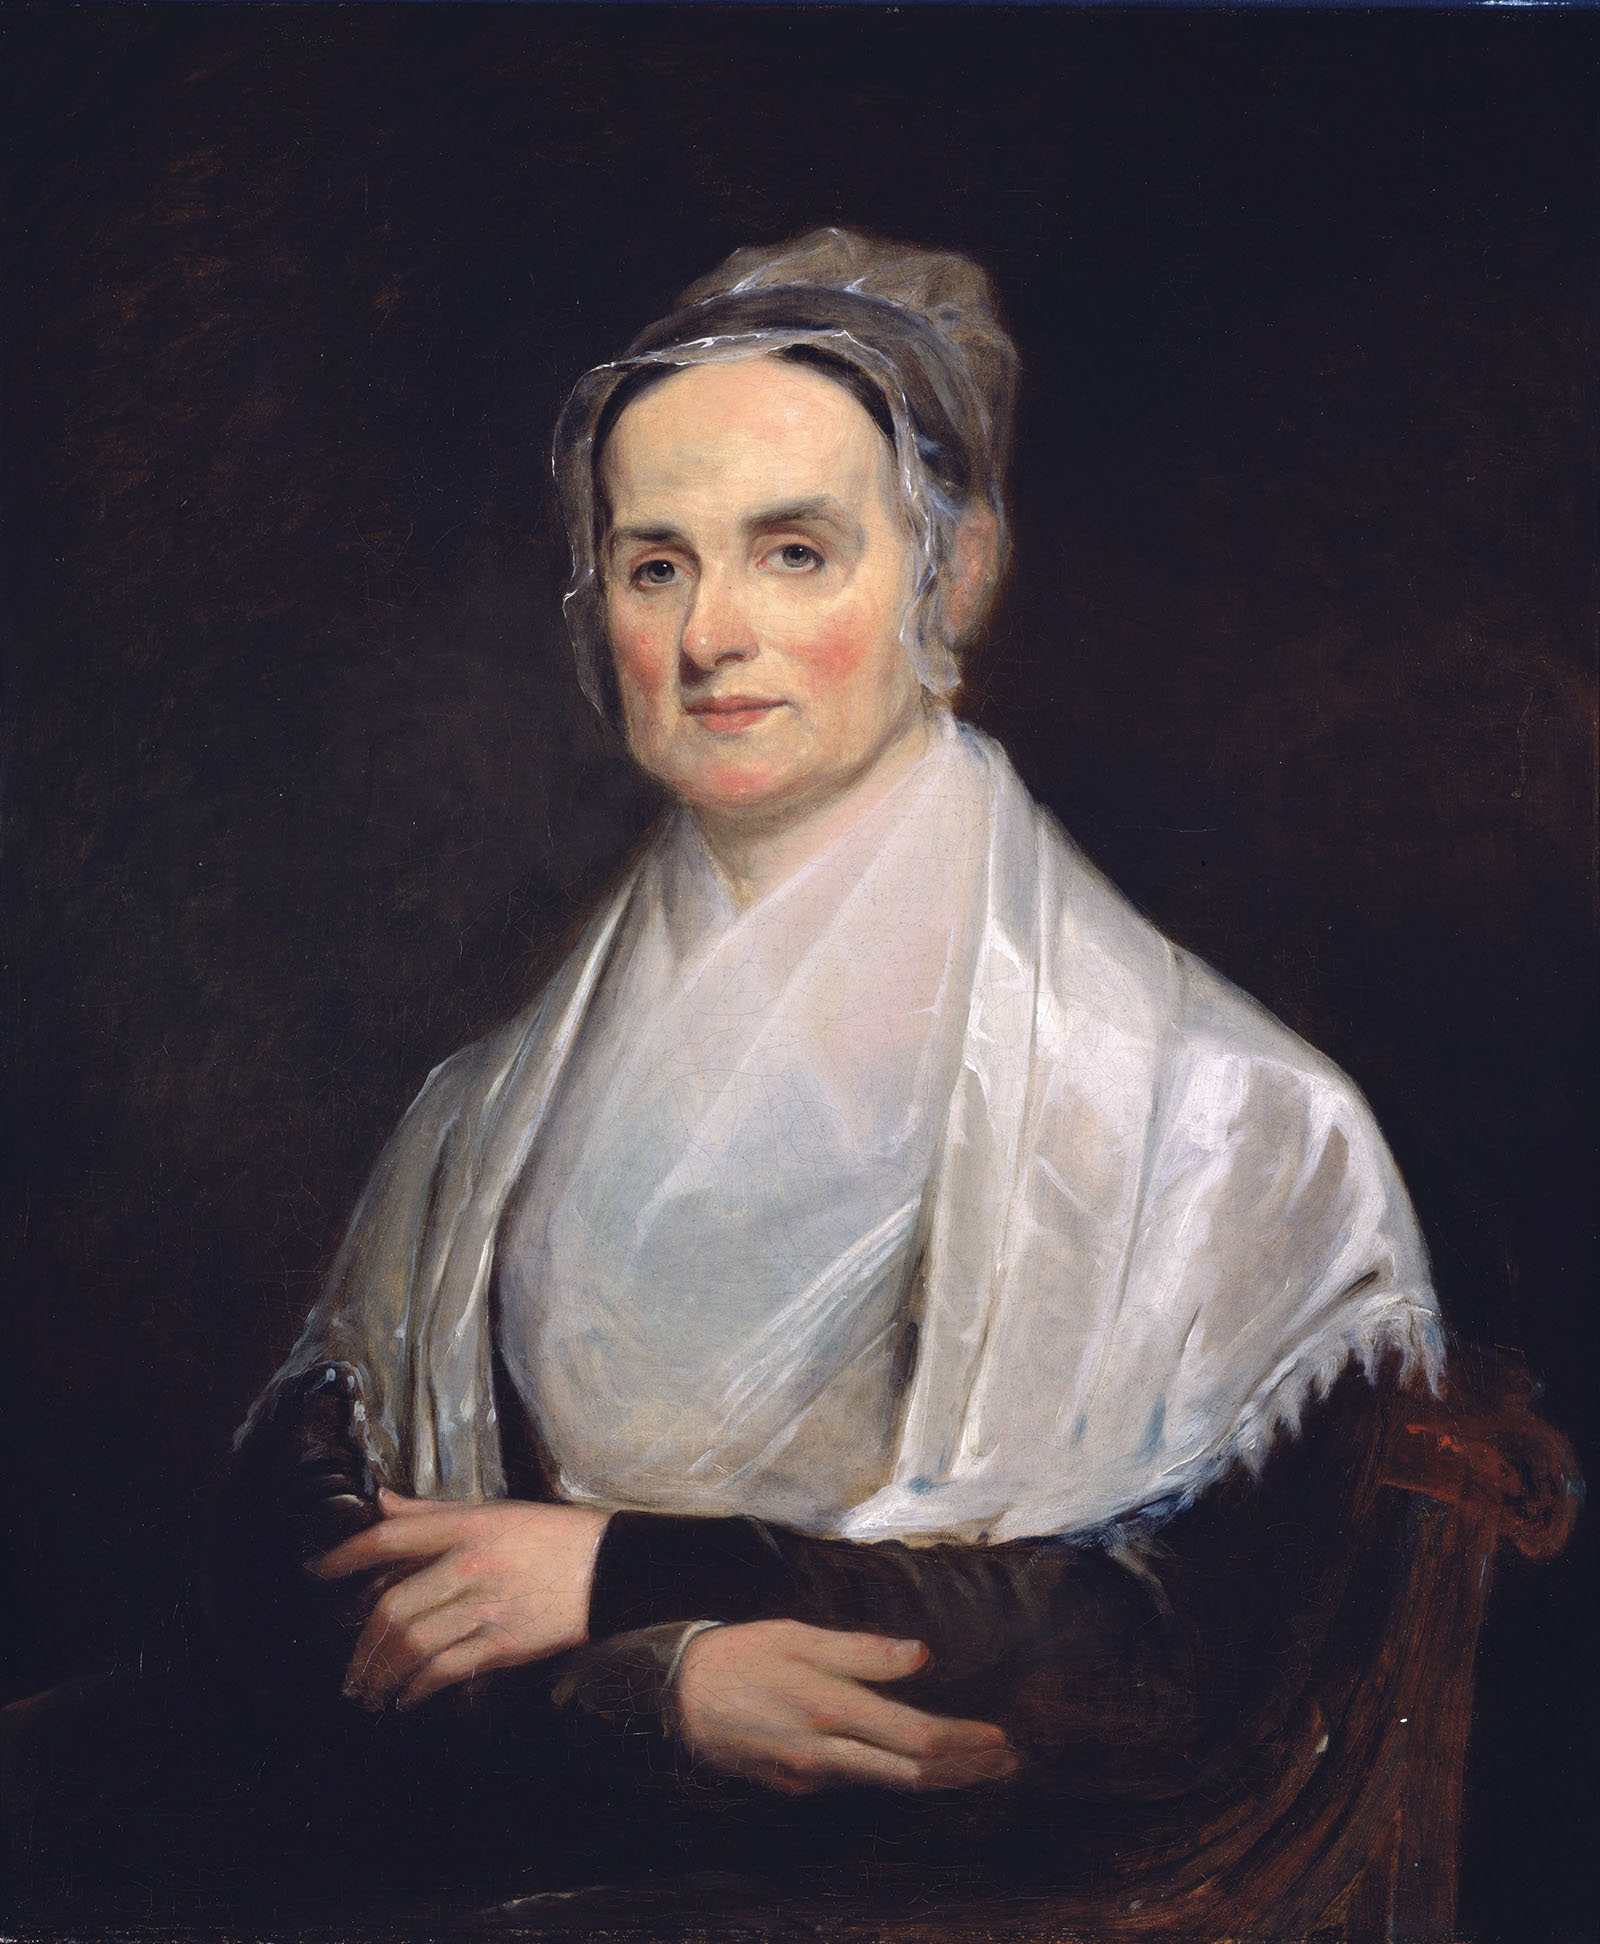 religion and reform the american yawp lucretia mott campaigned for women s rights abolition and equality in the united states